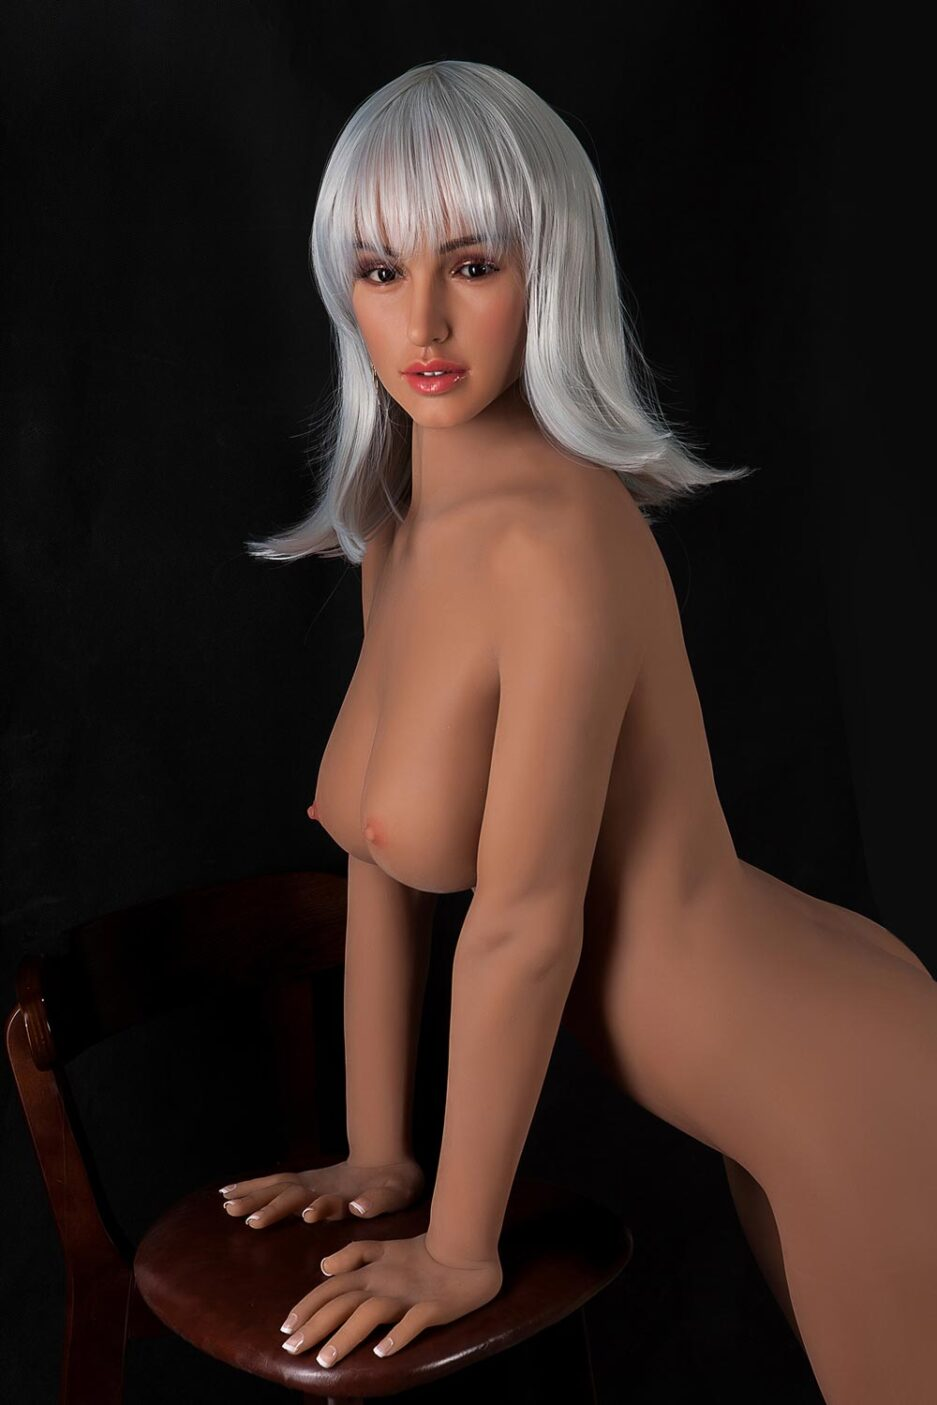 Silicone sex doll with both hands on a chair